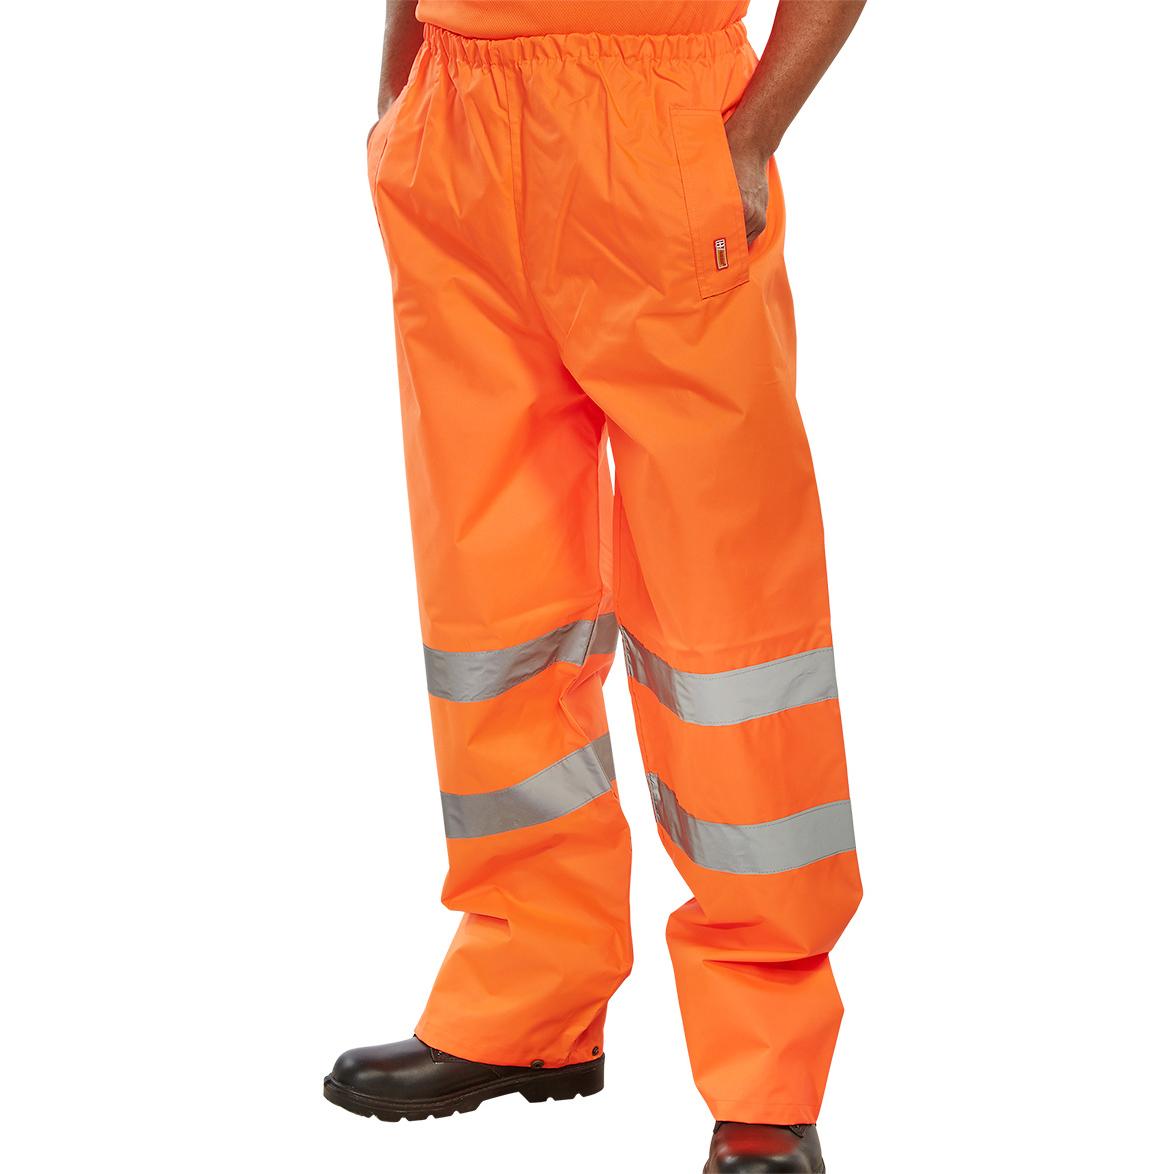 BSeen Traffic Trousers Hi-Vis Reflective Tape Small Orange Ref TENORS *Up to 3 Day Leadtime*